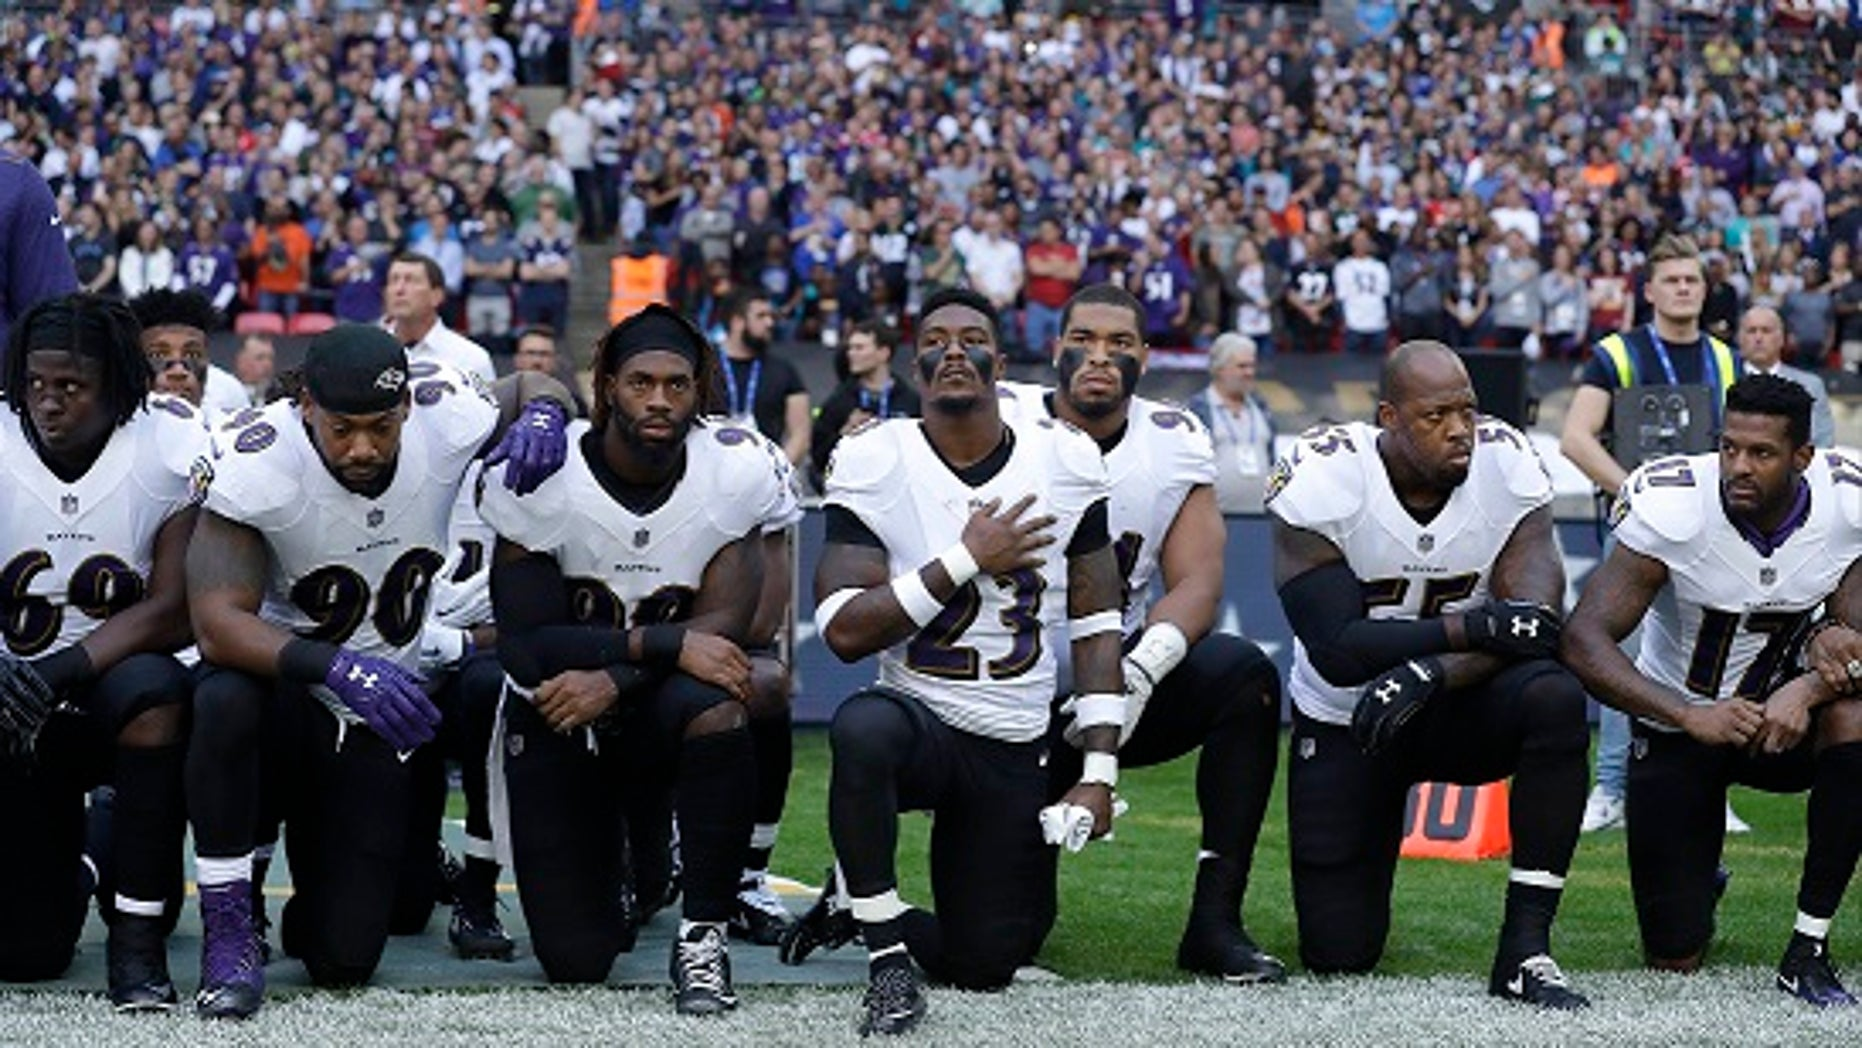 Baltimore Ravens players knelt during the playing of the U.S. national anthem on Sunday.